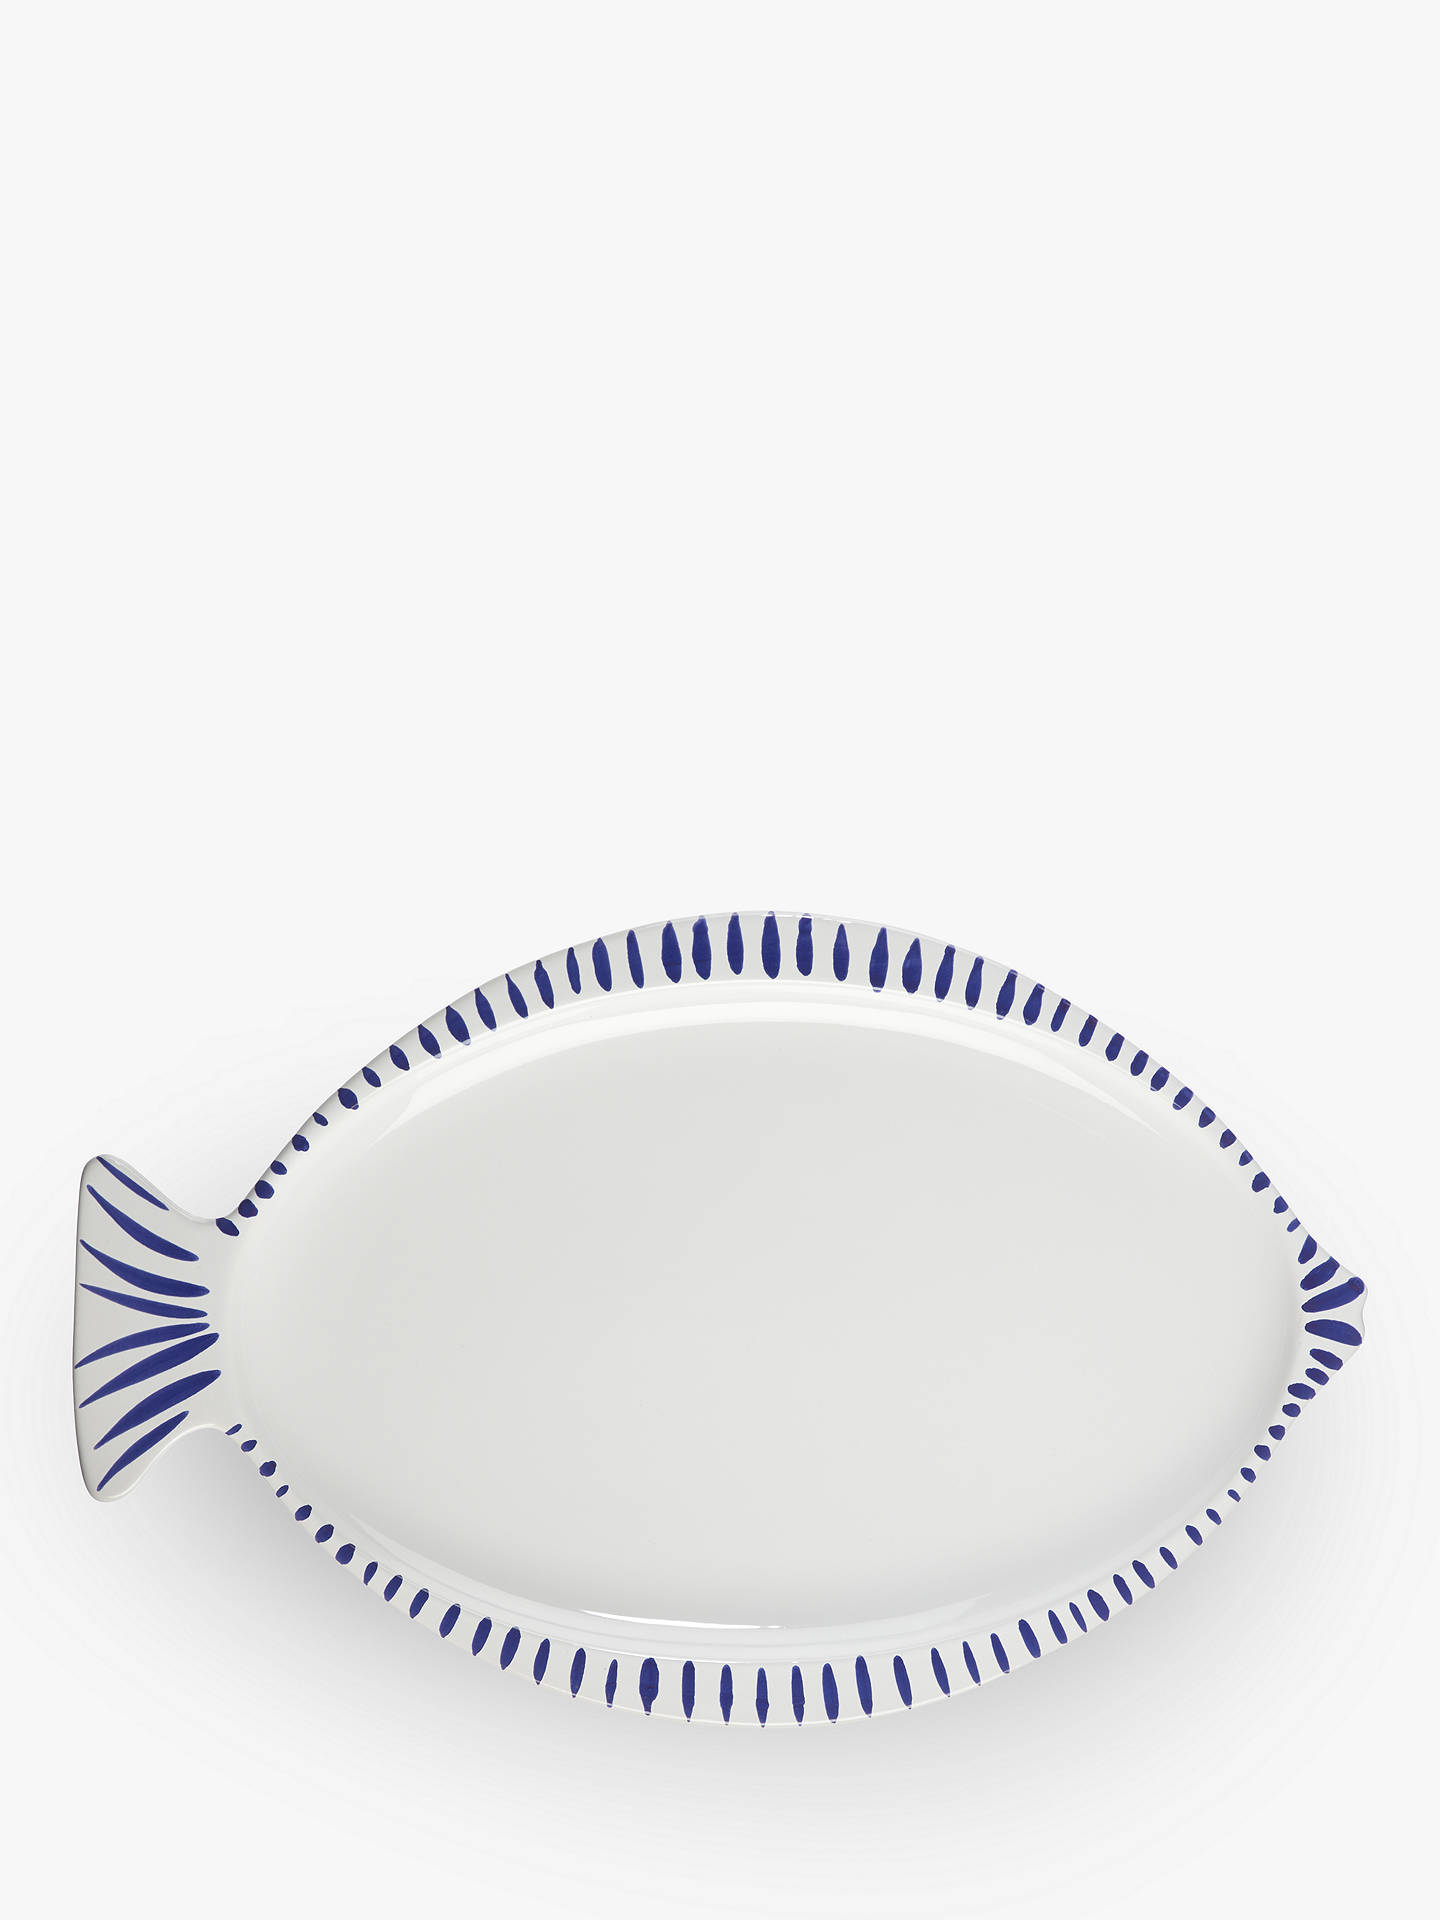 BuyJohn Lewis & Partners Fishy Platter, L41cm, White/Blue Online at johnlewis.com